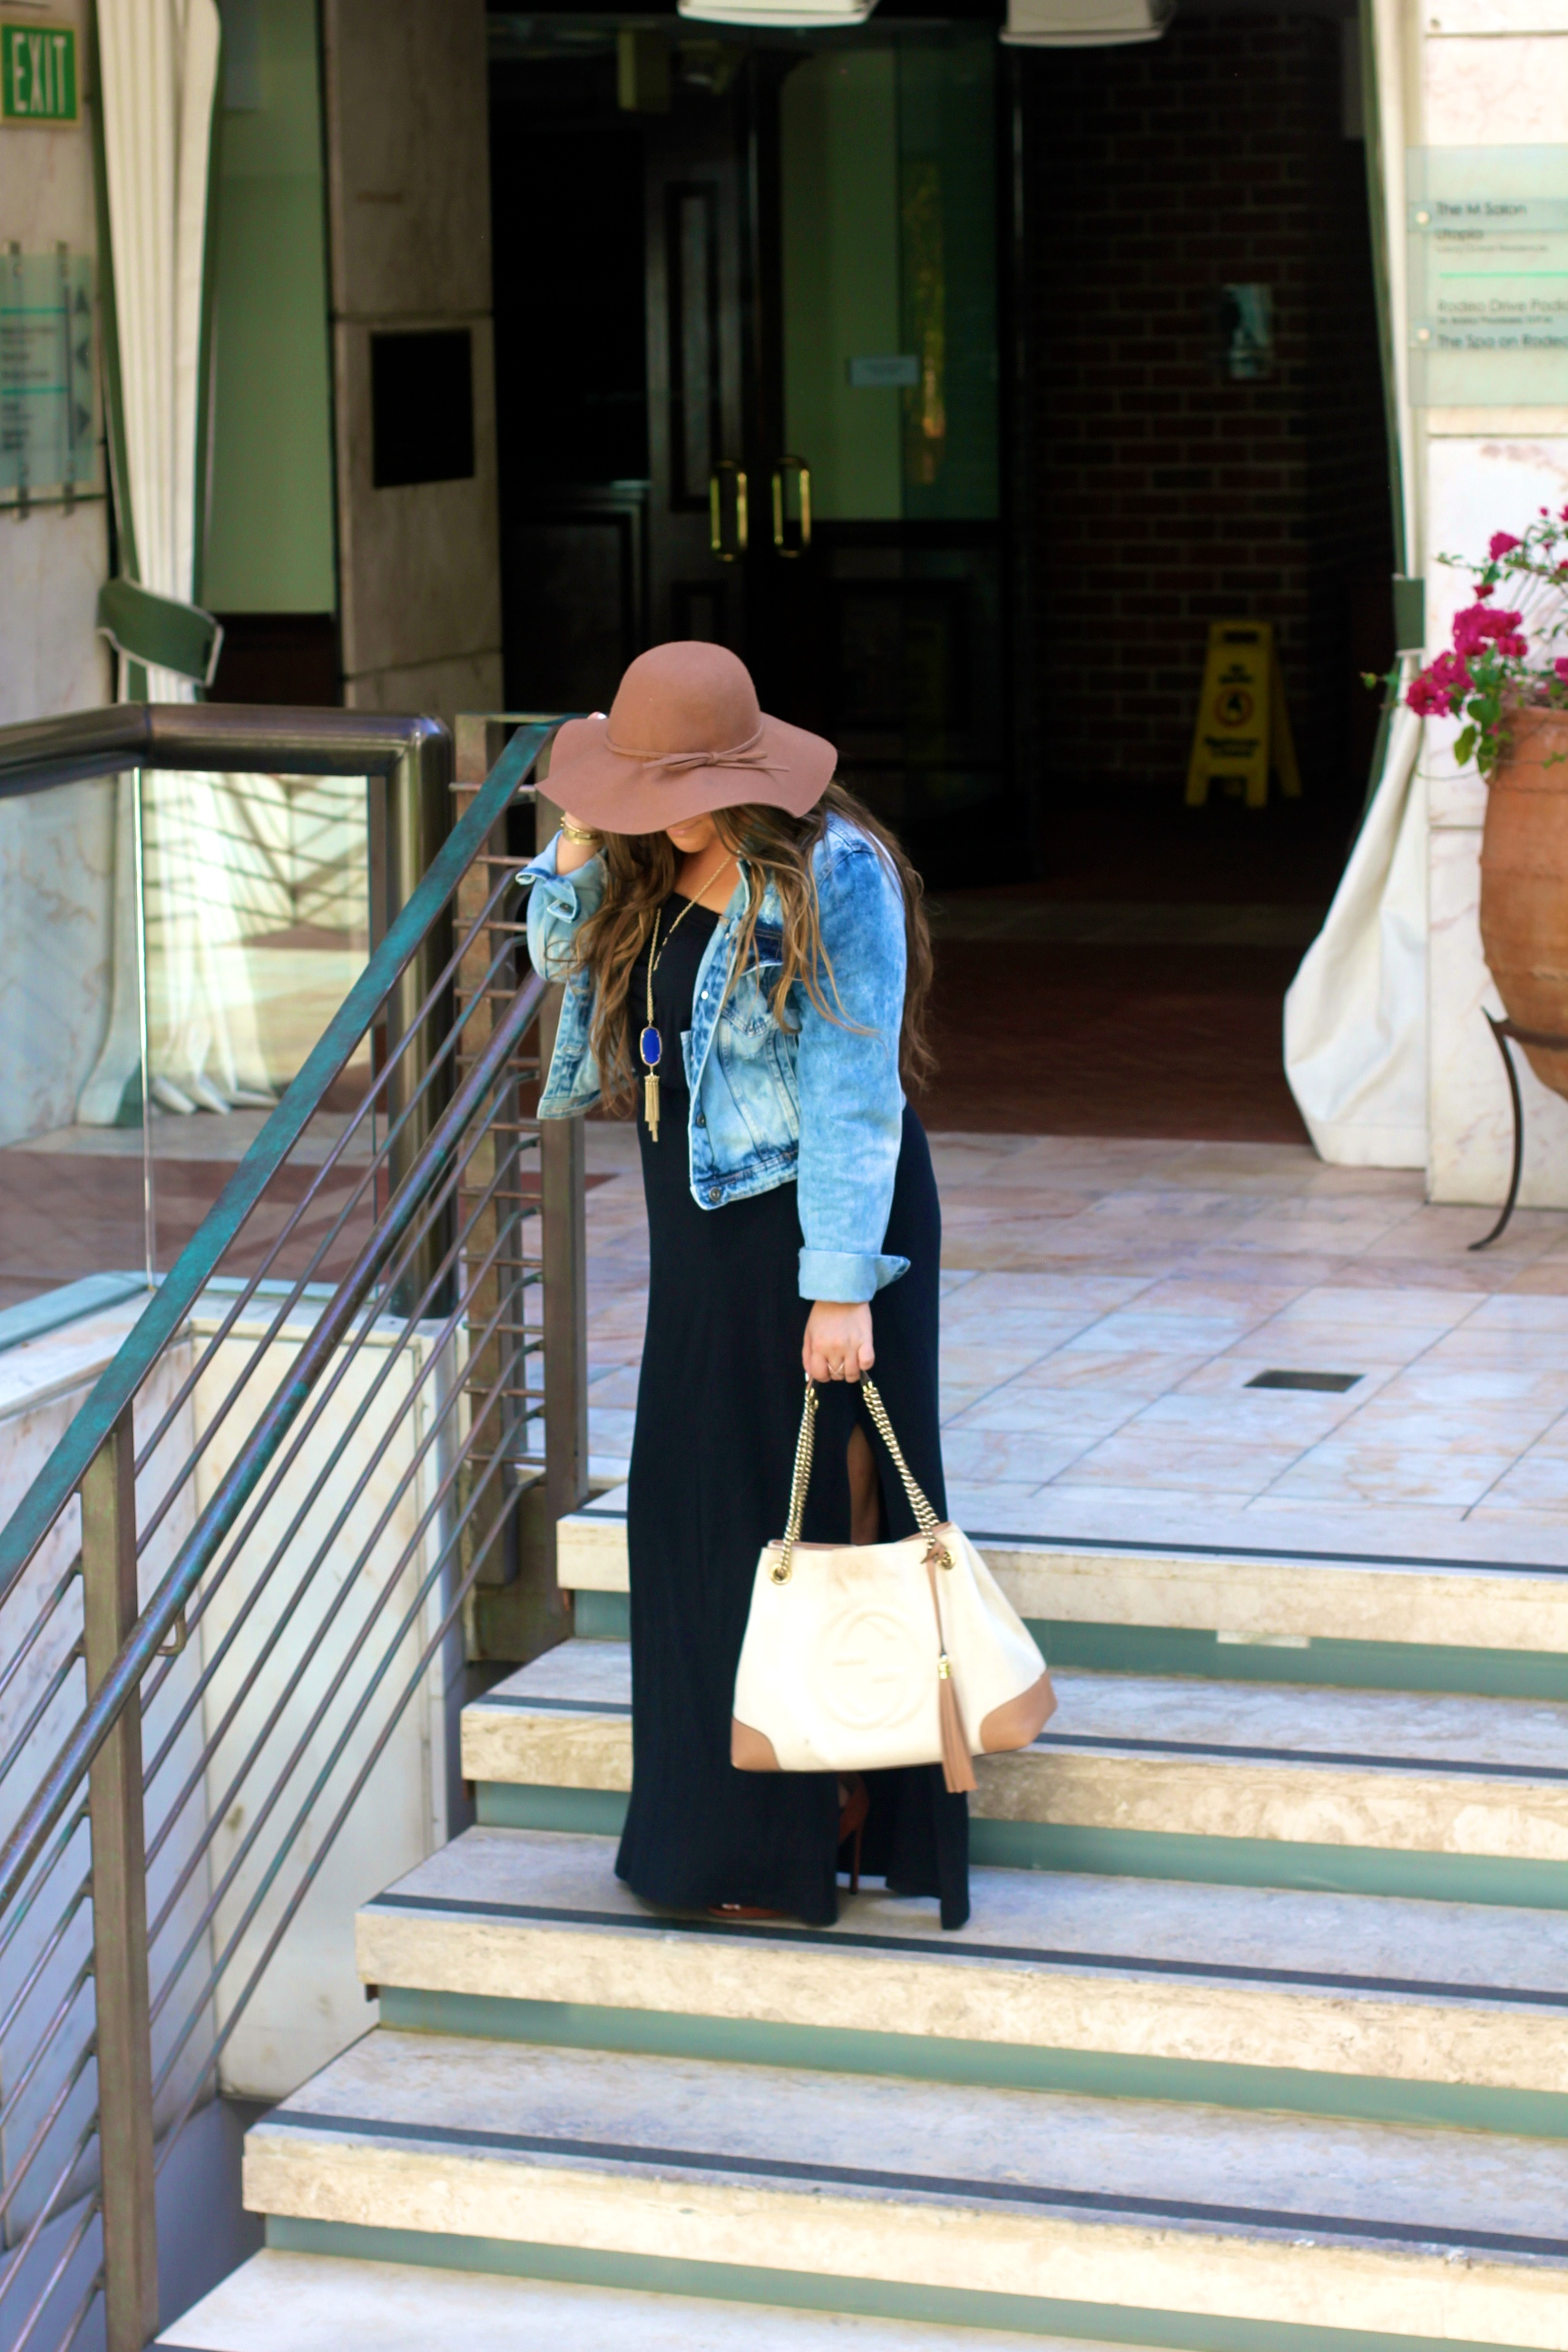 Black Maxi Dress, Acid Wash Denim Jacket, Denim Jacket, Brown Floppy Hat, Target Floppy Hat, Target Style, Gucci Soho Tote, Gucci Soho Bag, ShoeDazzle Booties, Tan Peep Toe Booties, Kendra Scott Rayne Necklace, Blue Kendra Scott Necklace, Blue Kendra Scott Rayne necklace, Threads 4 Thought Maxi Dress, Fall Maxi Dress, Fall Style, MissyOnMadison, Melissa Tierney, Fall Outfit Inspo, Fall Trends, Fall Style, Style Blogger, Street Style,